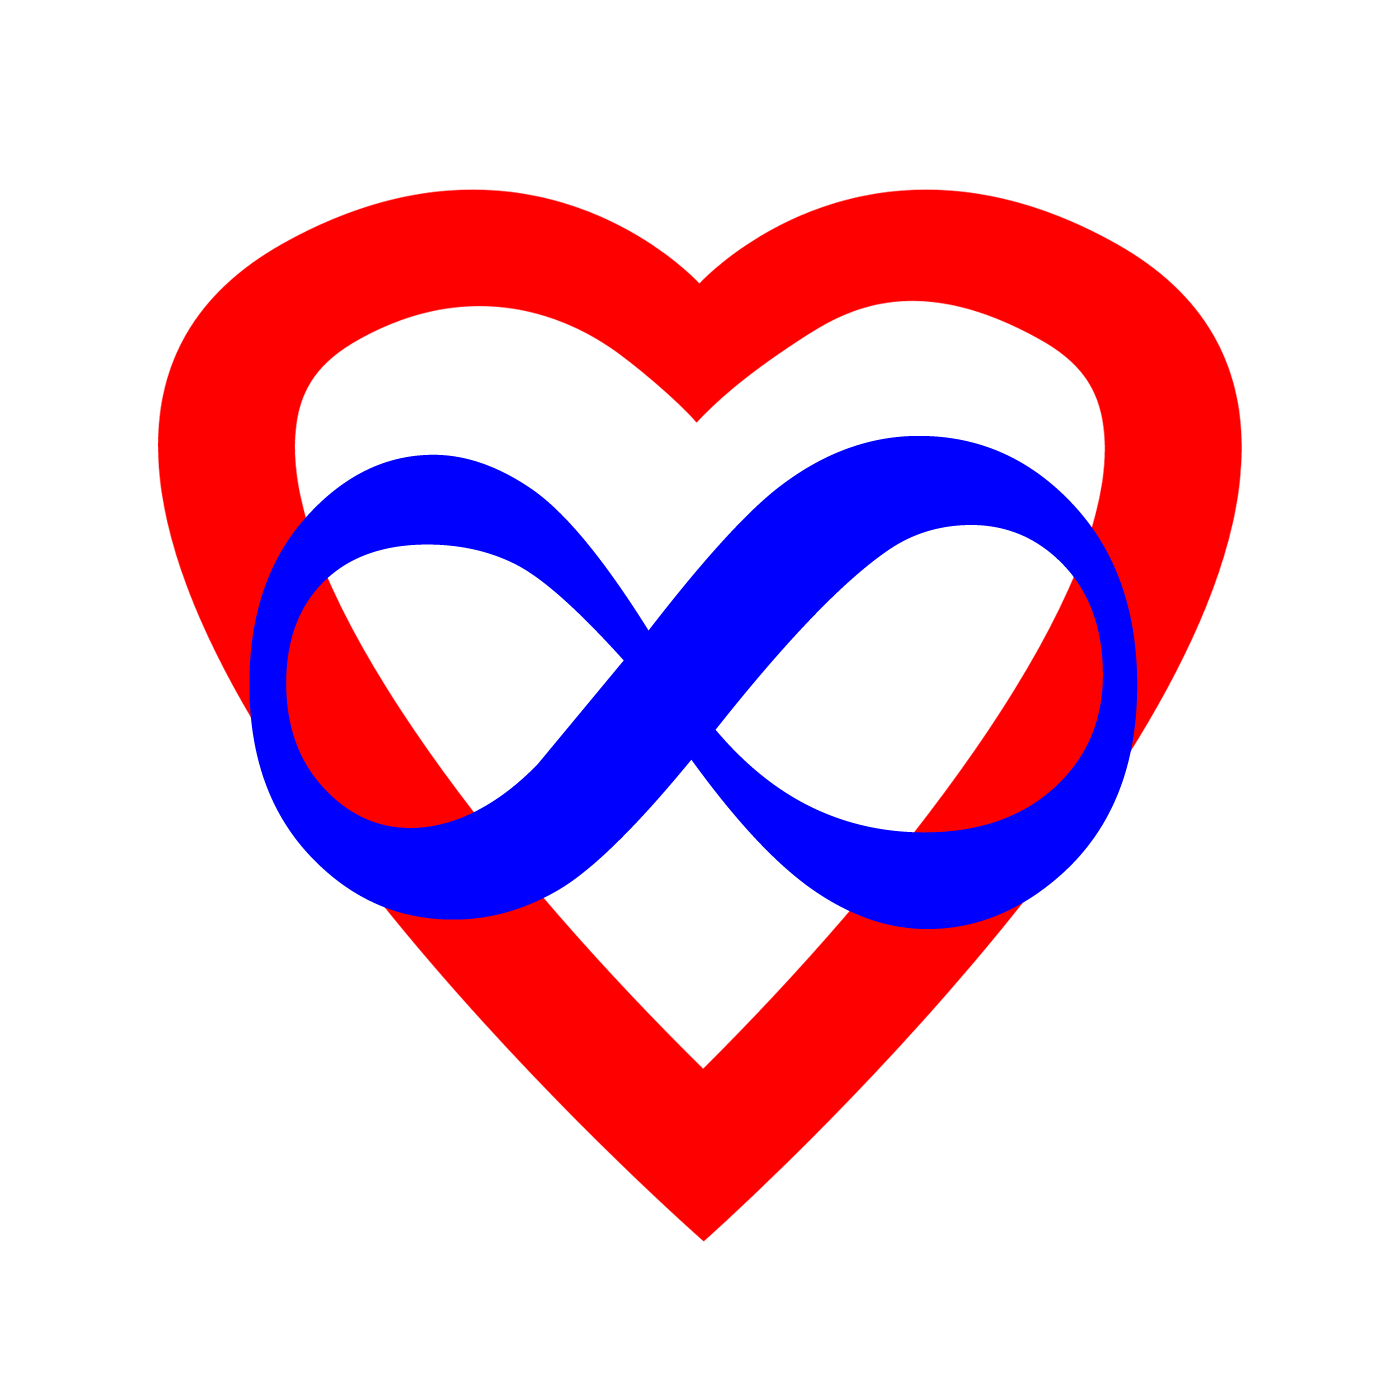 Polyamory logo: a Red heart overlaid with a black infinity symbol